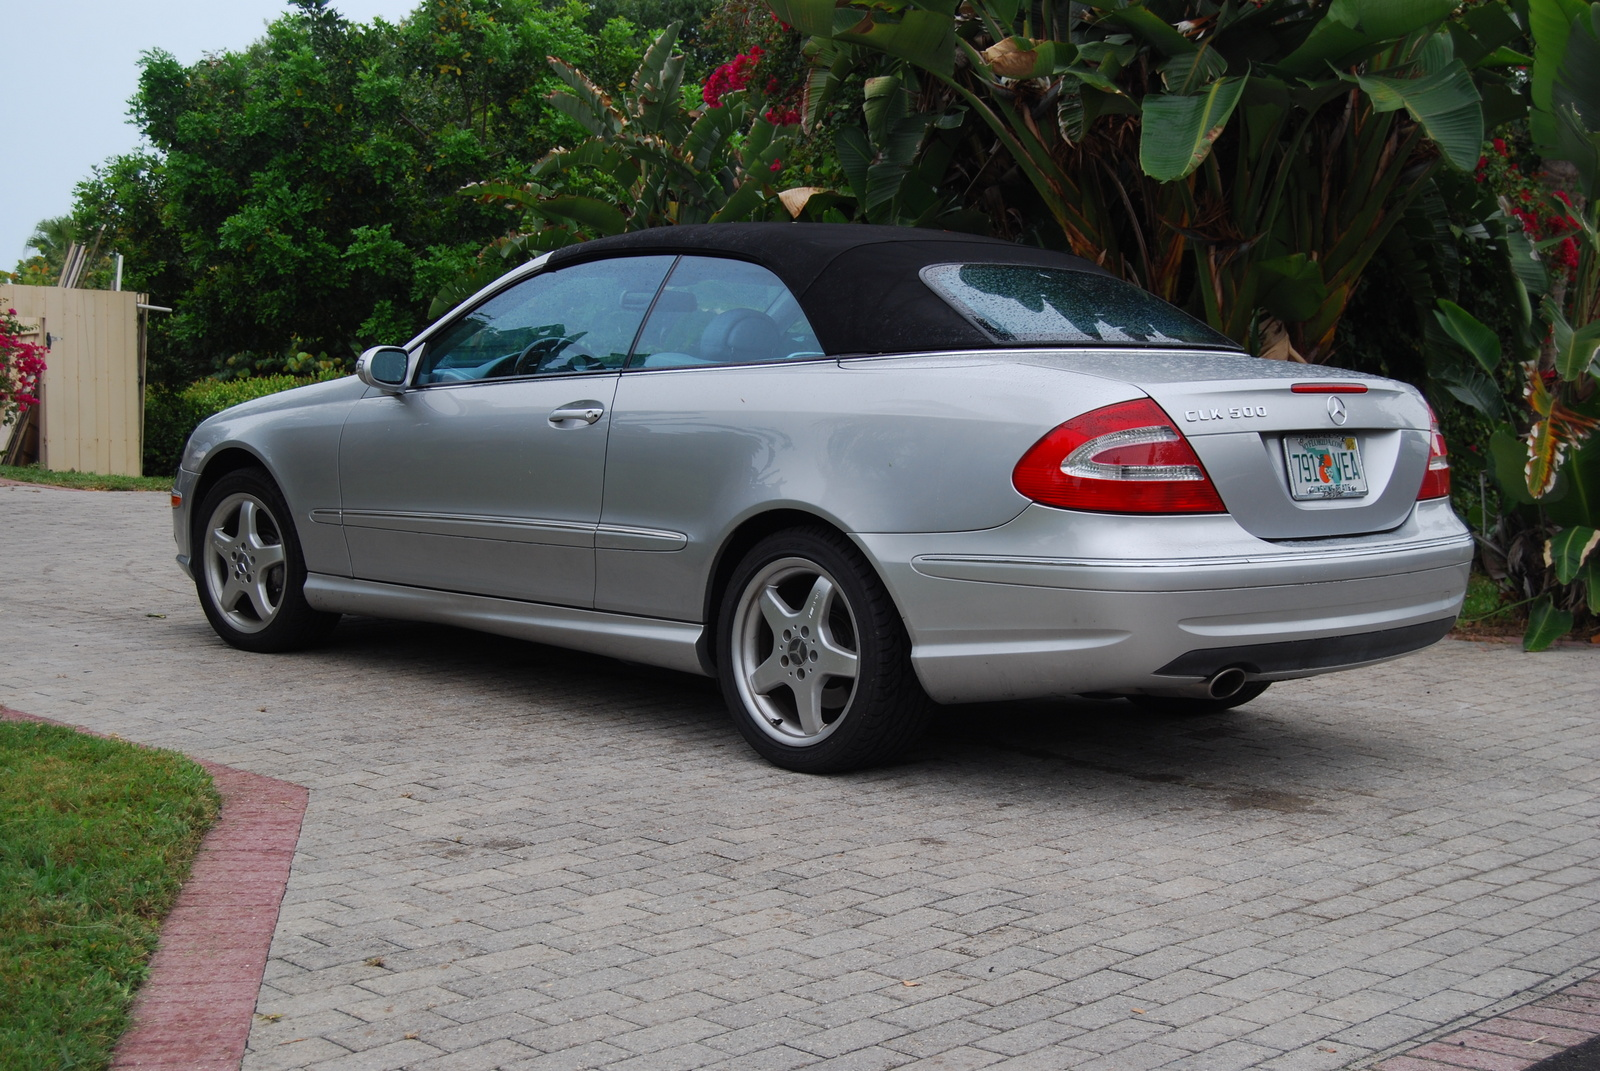 Mercedes-Benz CLK 500 photo 15